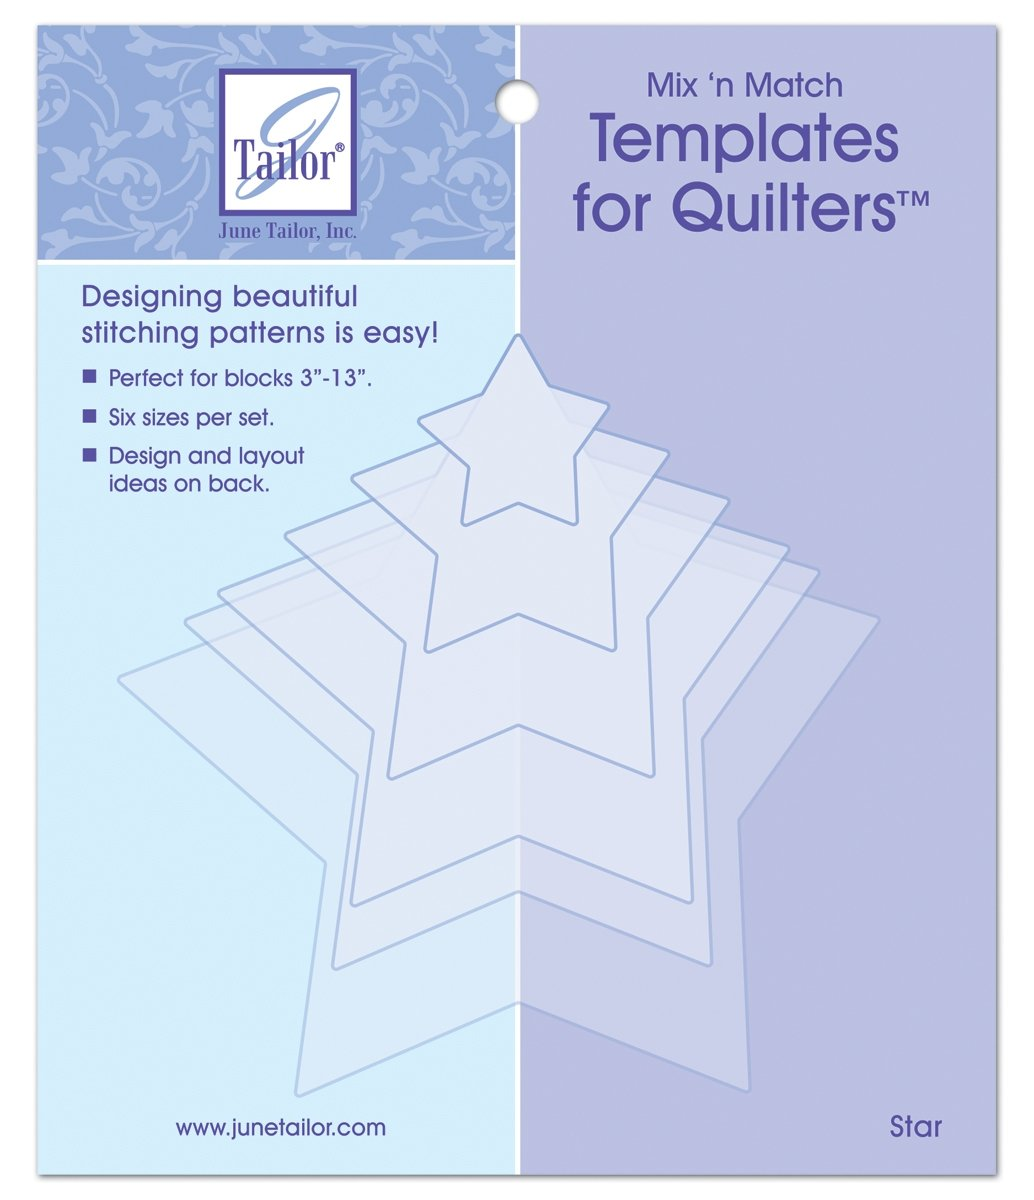 June Tailor Mix n Match Templates for Quilters Star Shape 6 Pack